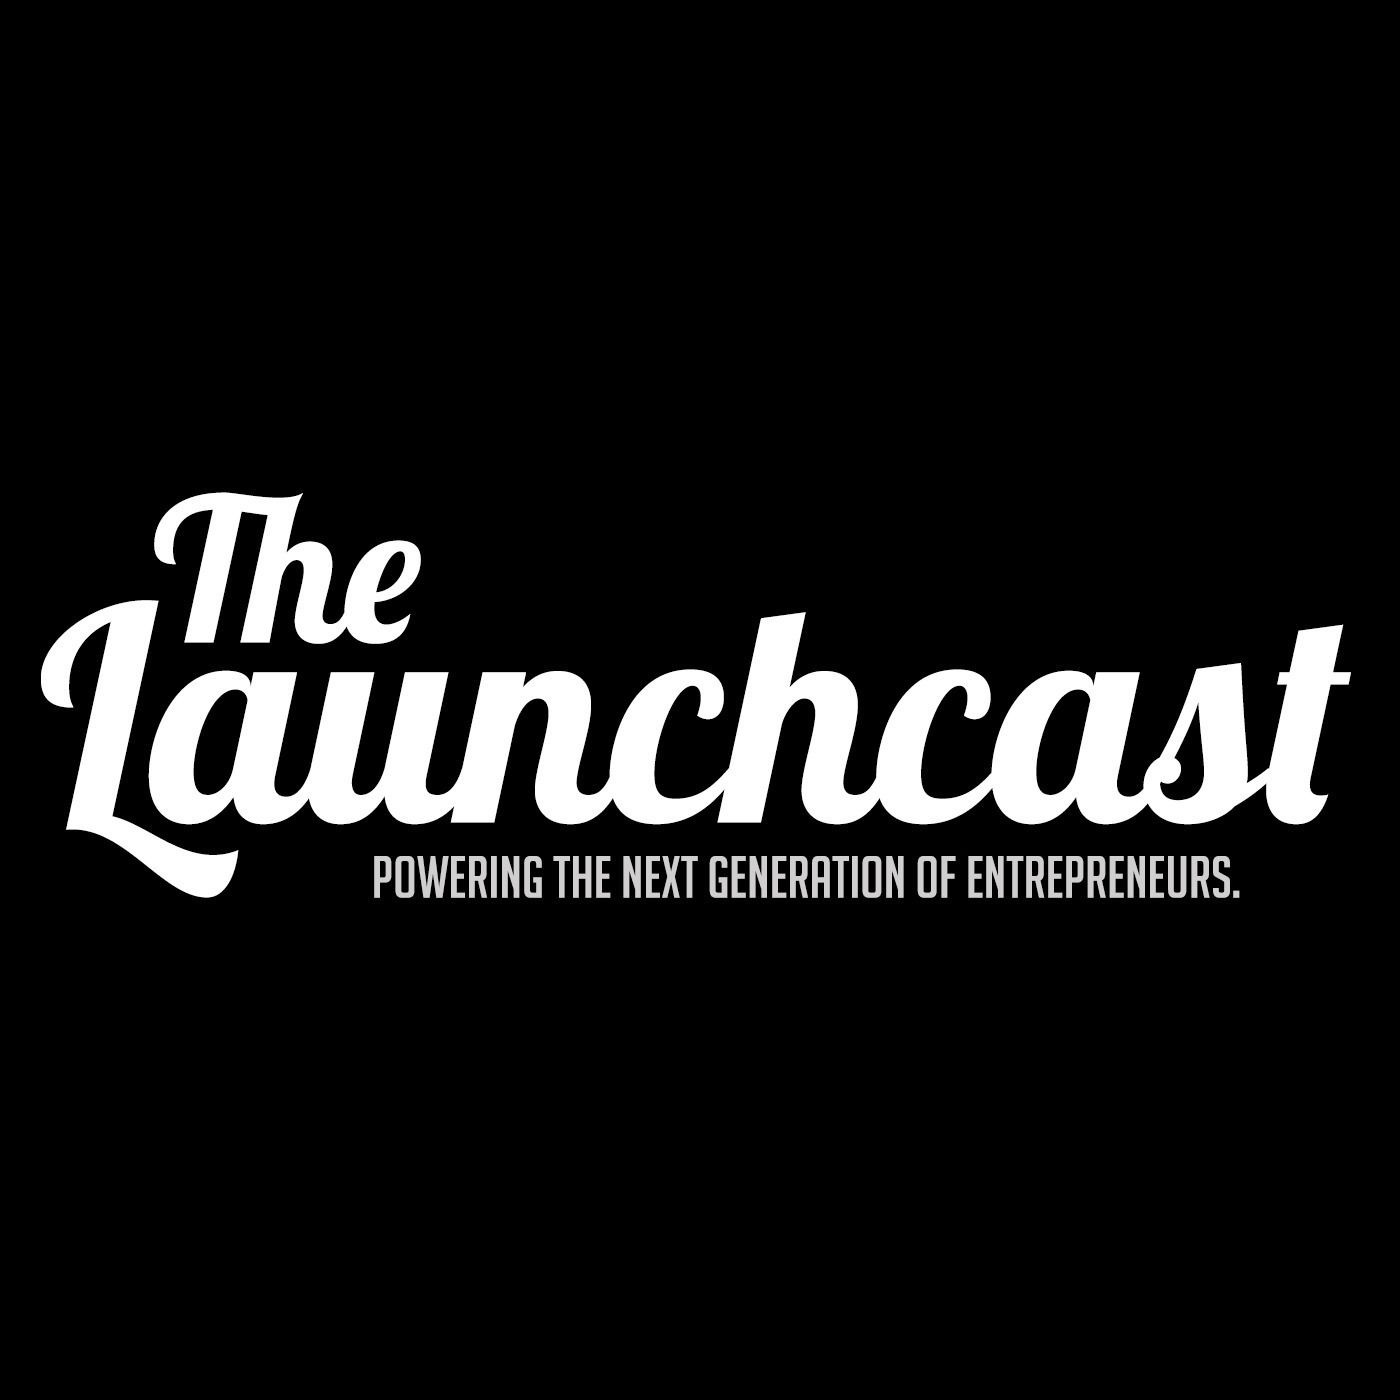 The Launchcast